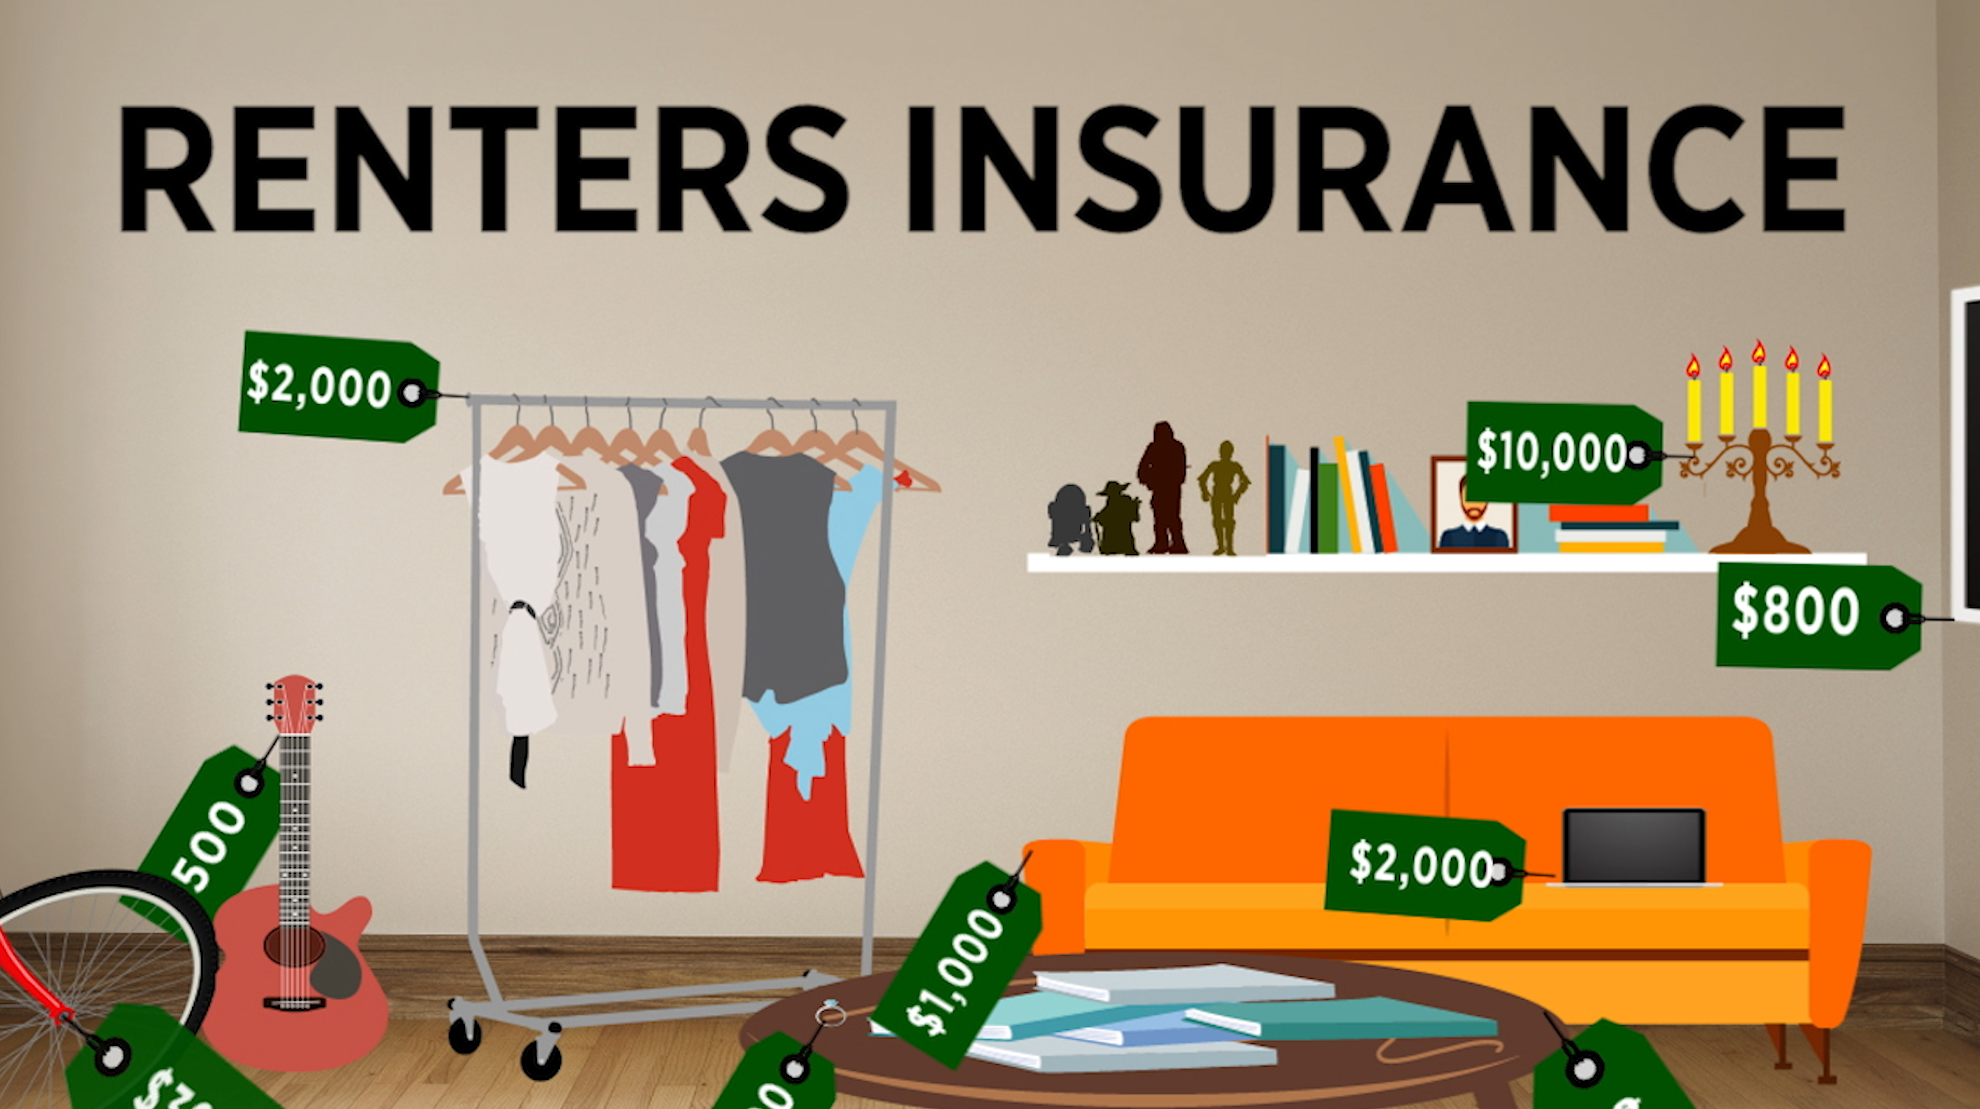 Renters insurance: What's covered and what's not [Video]